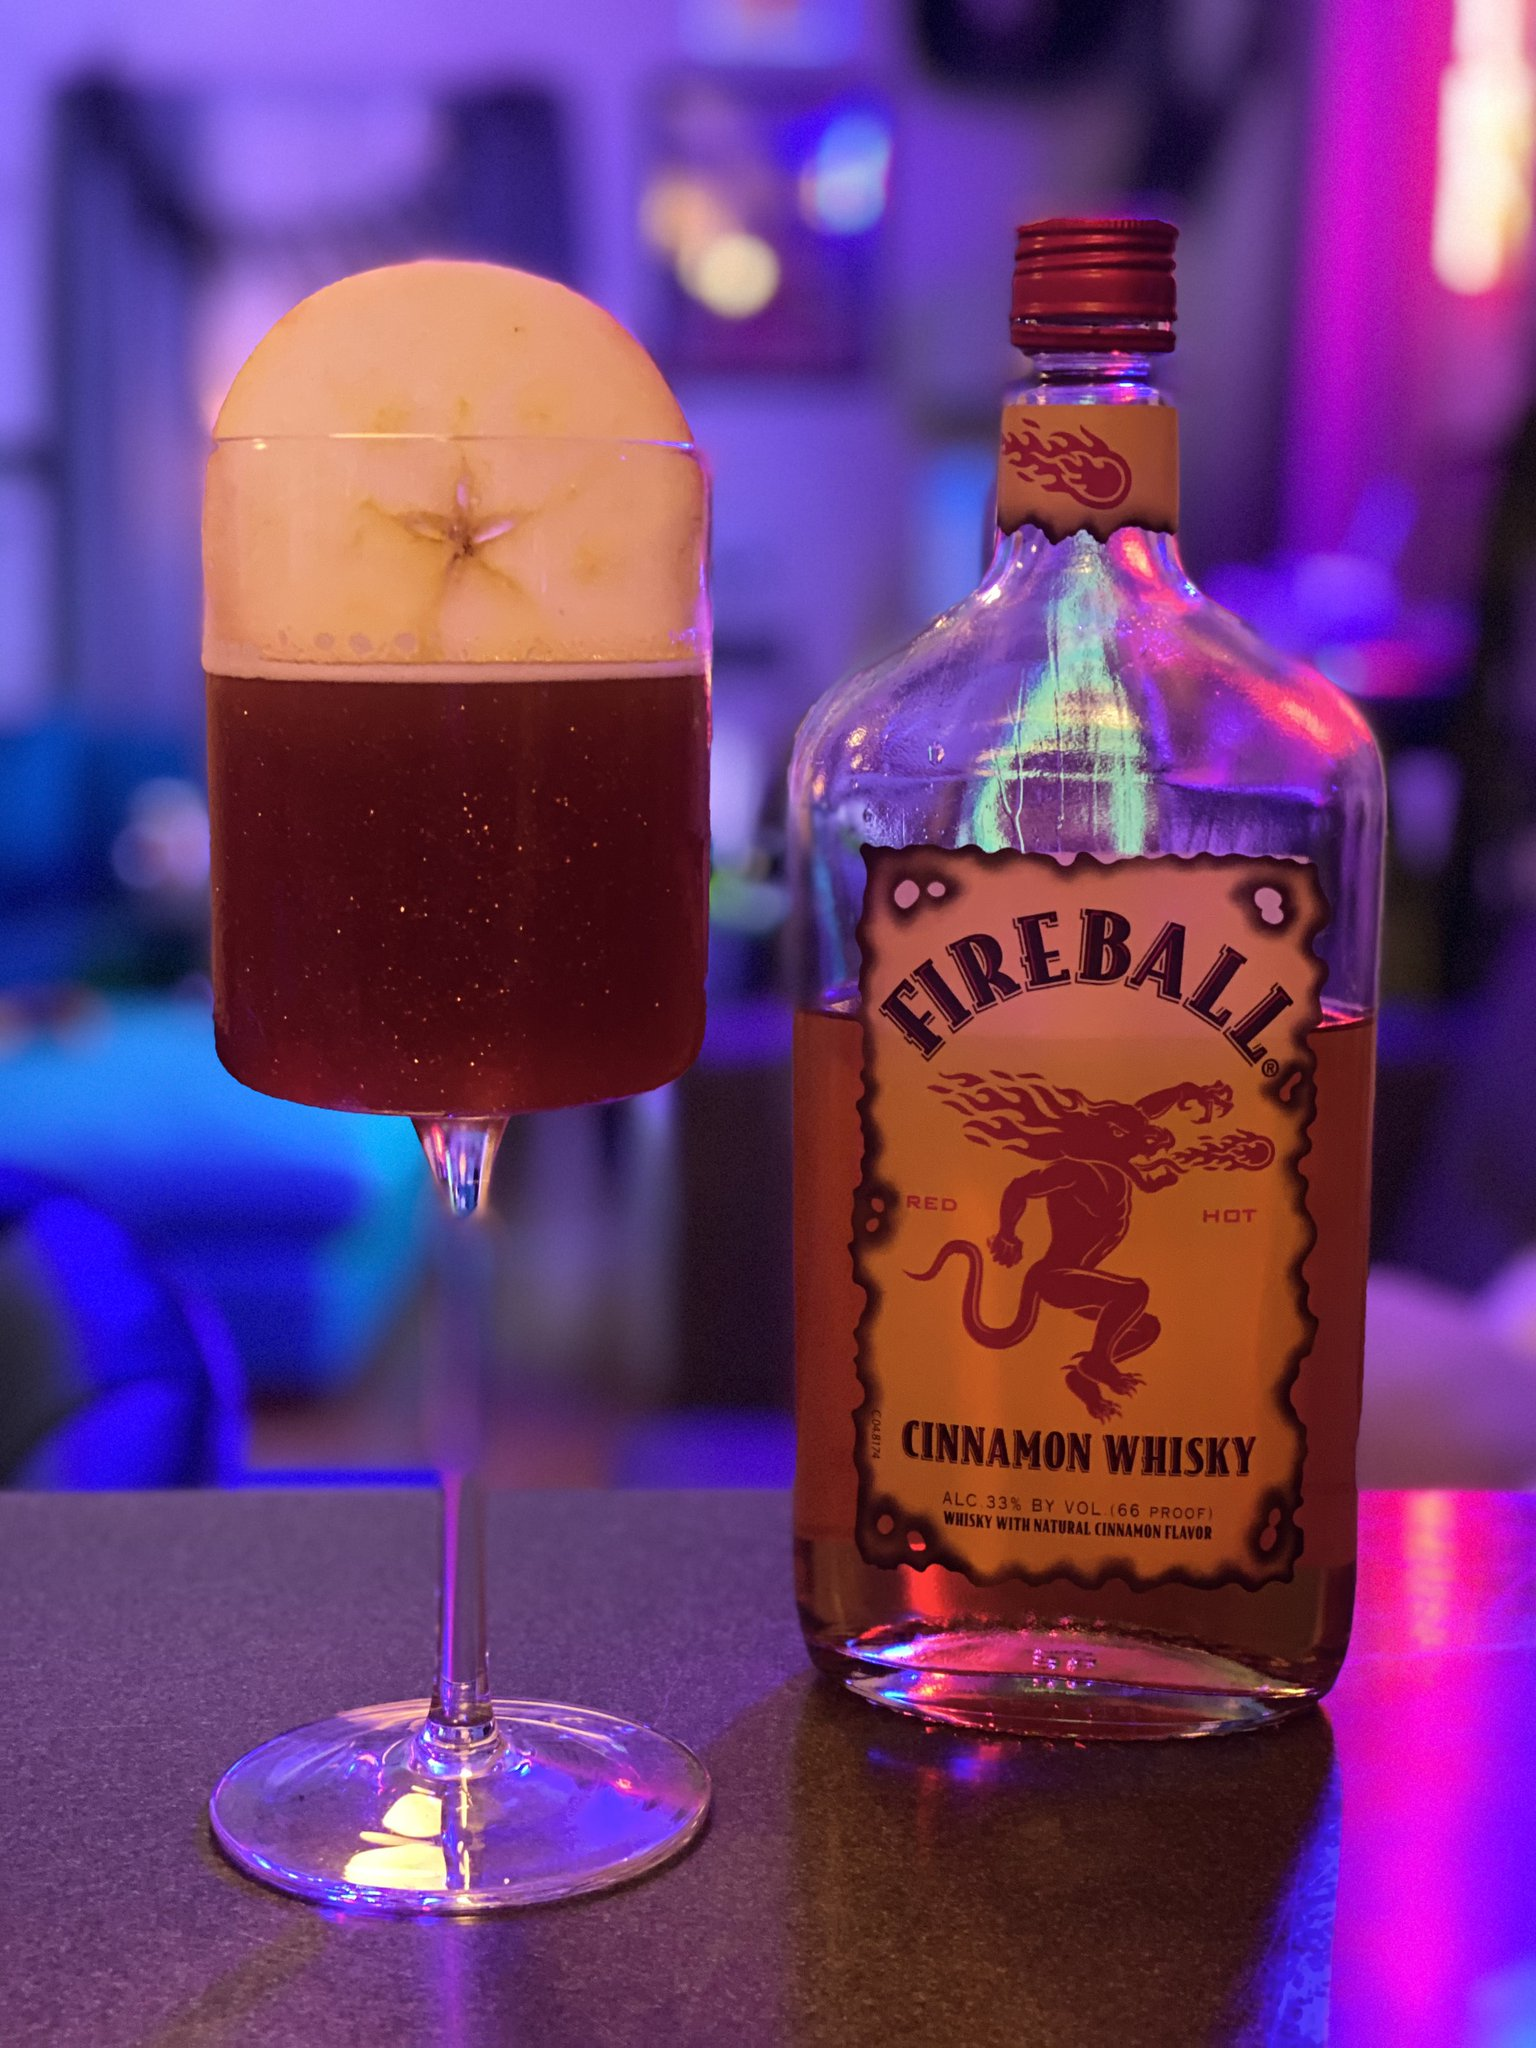 Lawrence Sonntag On Twitter Enjoy Fireballfriday With The Sassy Sipper 1 3 Cup Cranberry Pomegranate Juice 1 3 Cup Apple Cider 1 Oz Tart Cherry Grenadine 3 Oz Fireball Load Into Shaker With Lawrence was an early 20th century writer best known for his controversial novel 'lady this biography of d. twitter